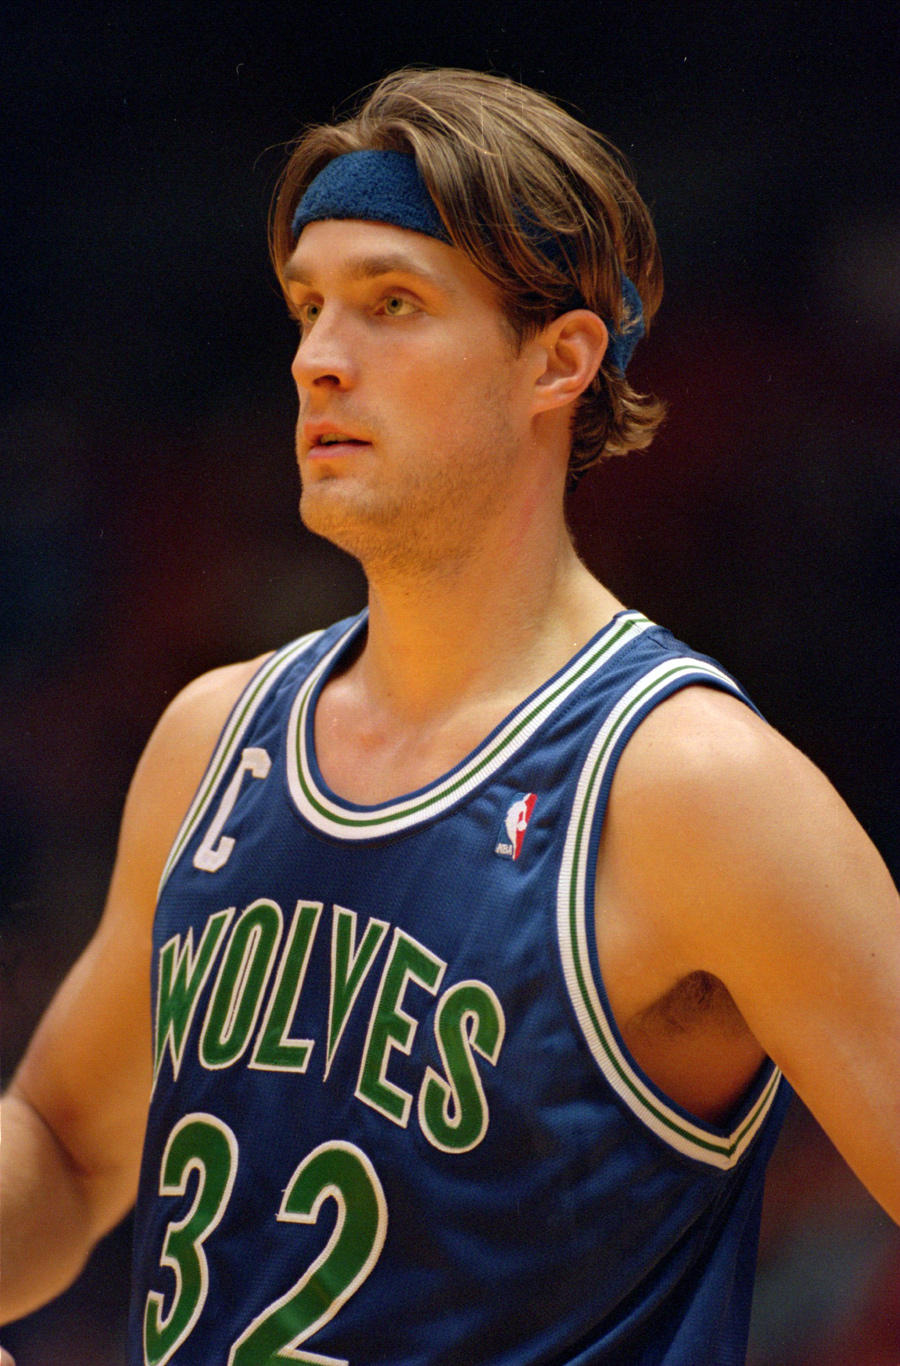 Timberwolves On Twitter Christian Laettner In 1993 How About